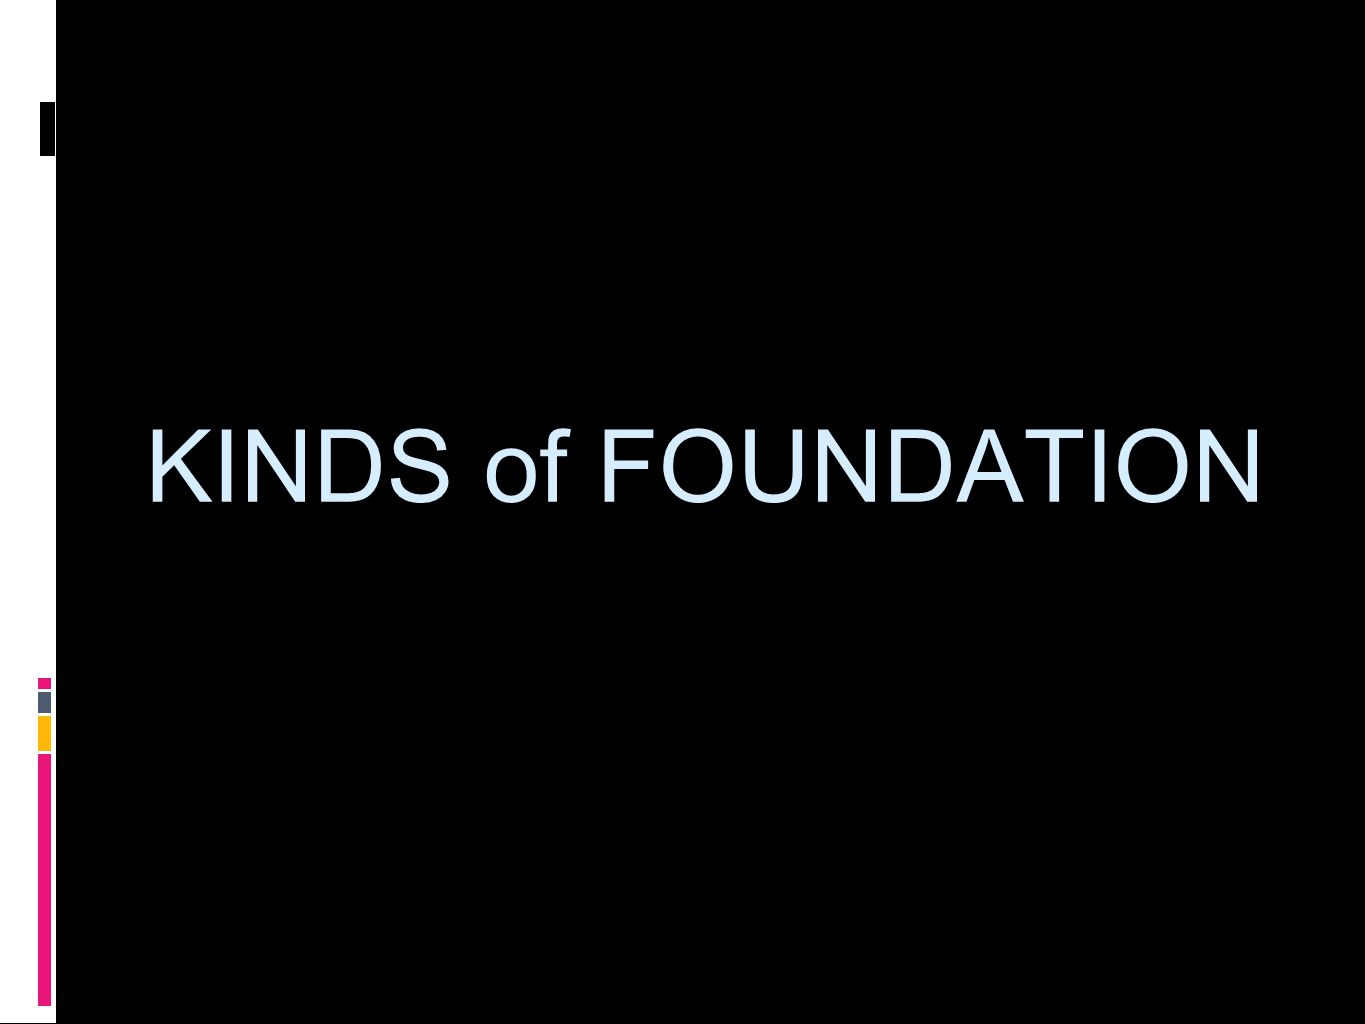 KINDS of FOUNDATION